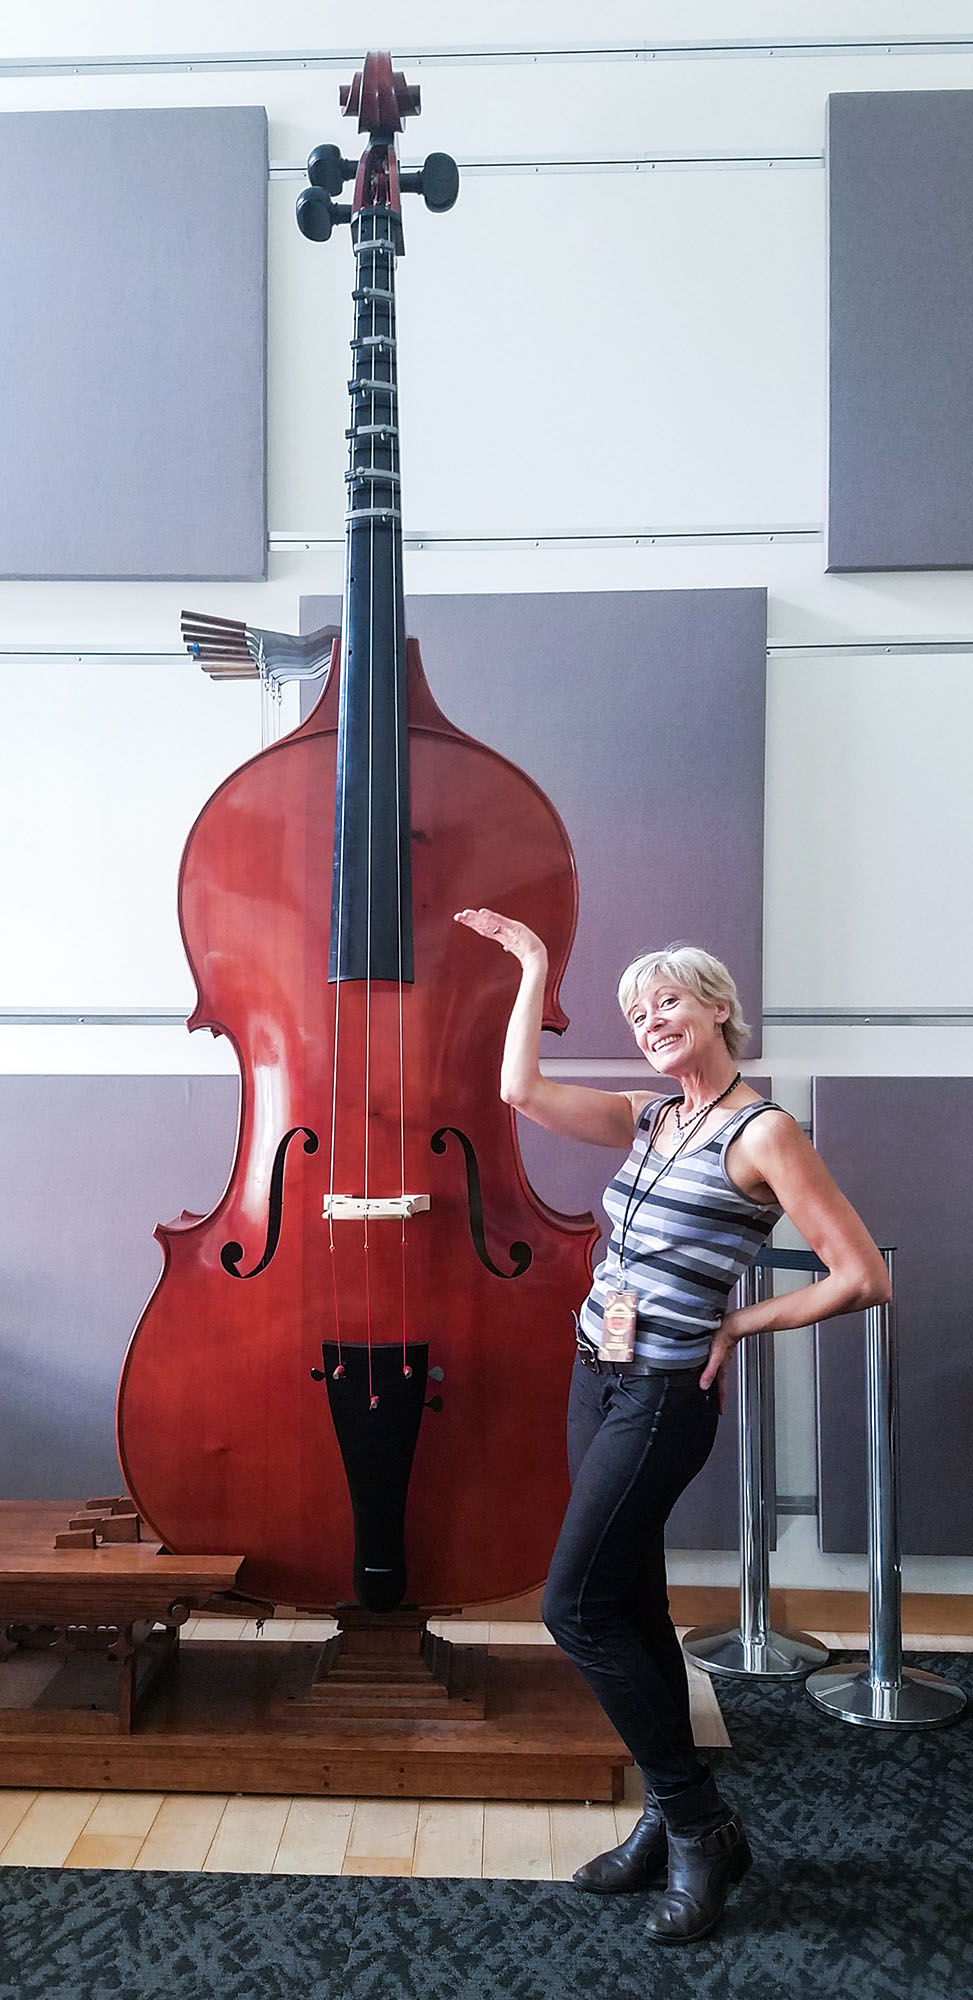 Cello_lilli.jpg